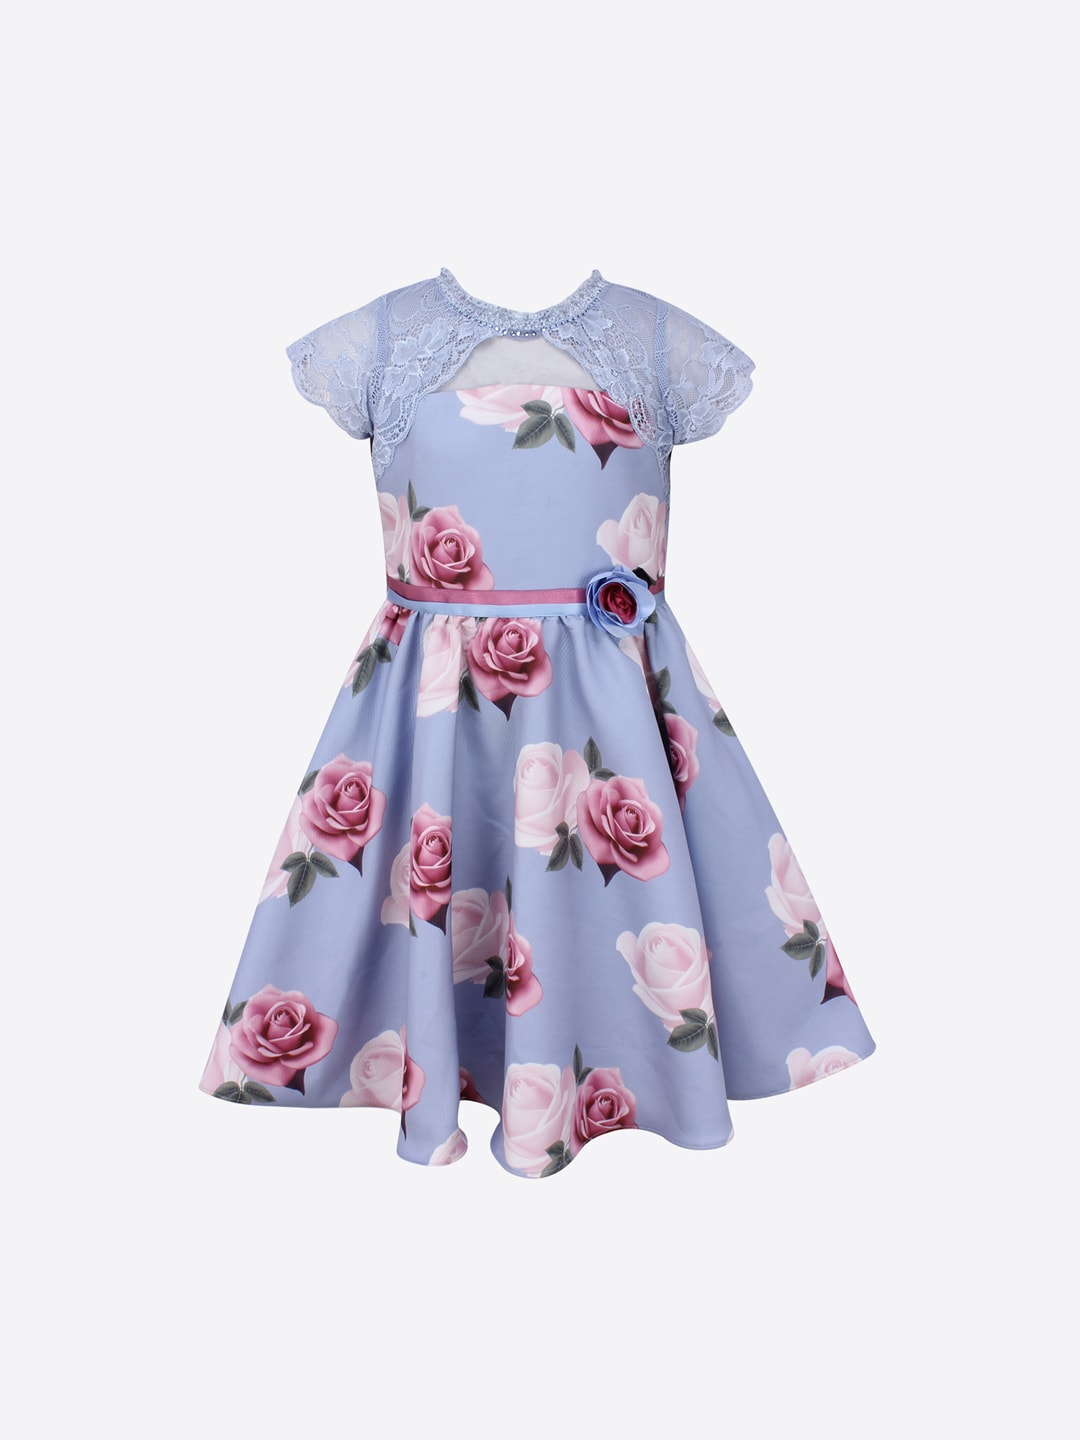 fbbc393f3e9 Girls Clothes - Buy Girls Clothing Online in India